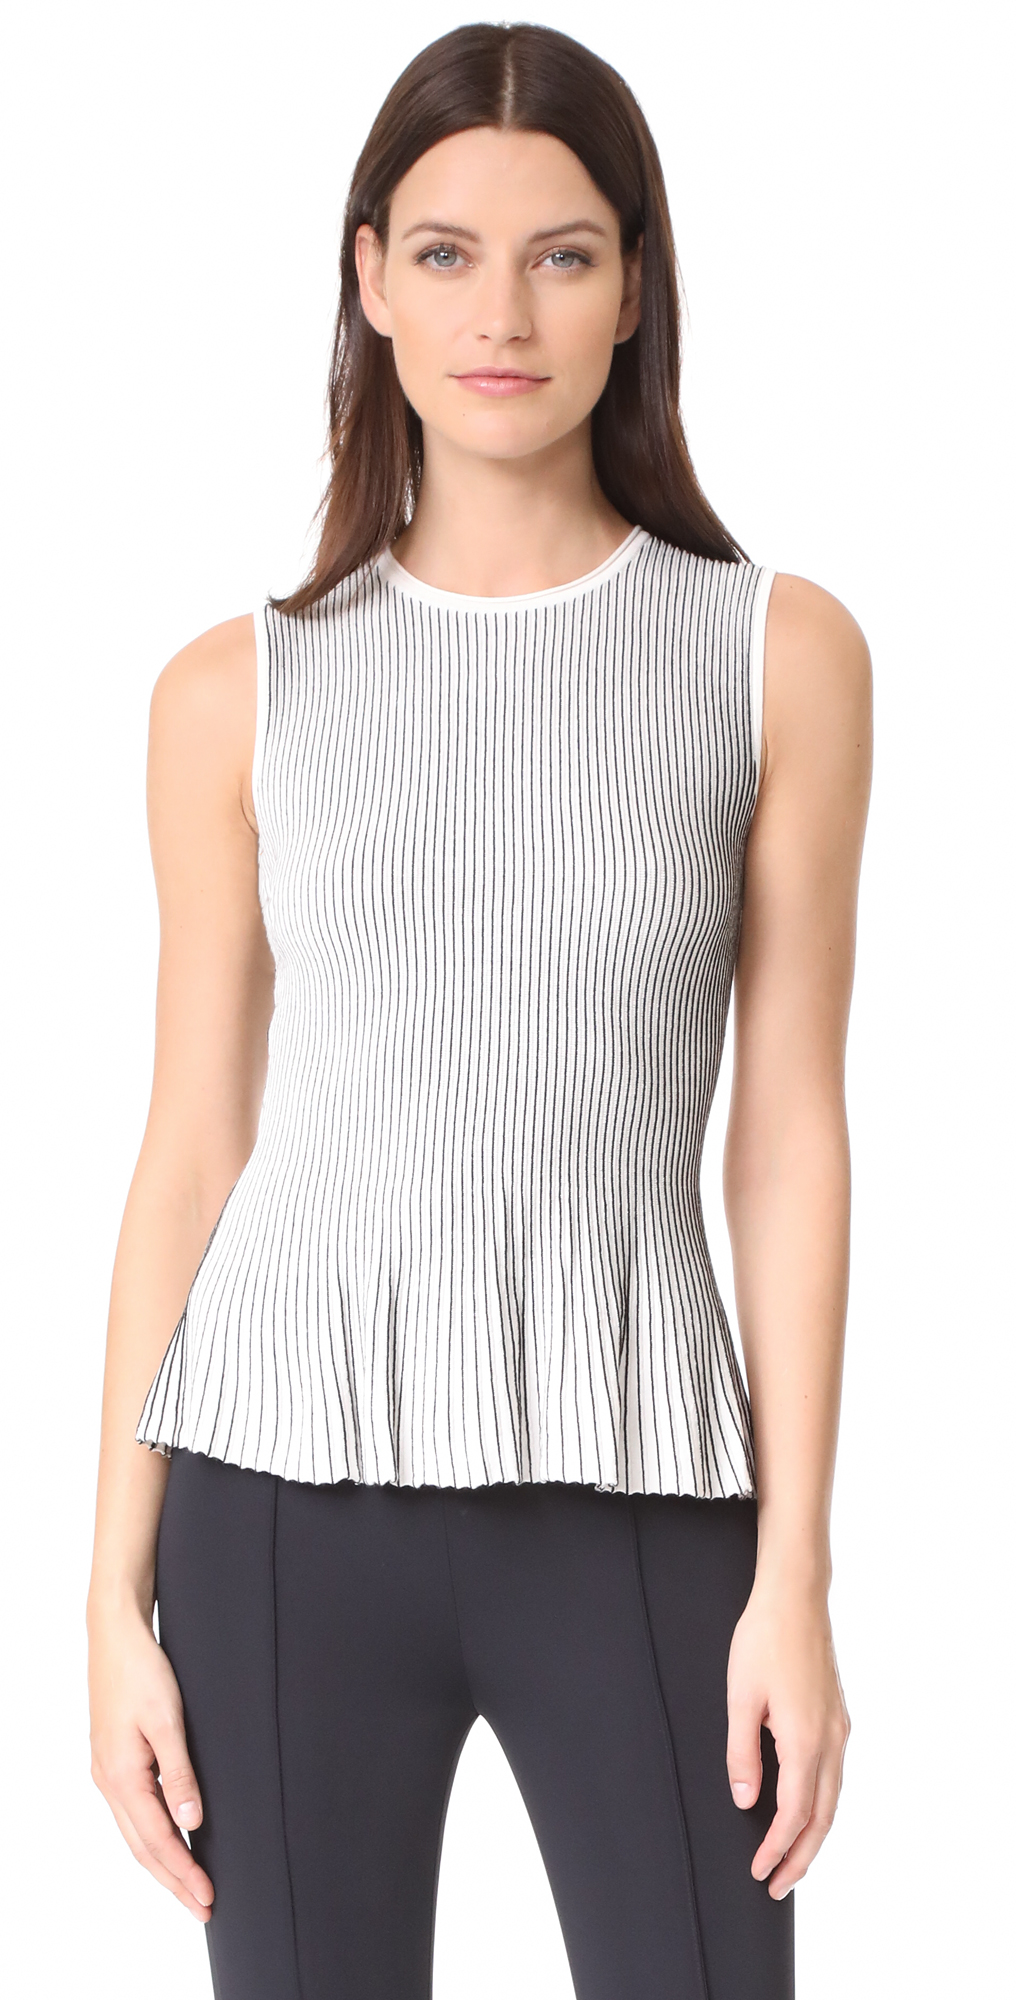 Canelis Knit Top Theory